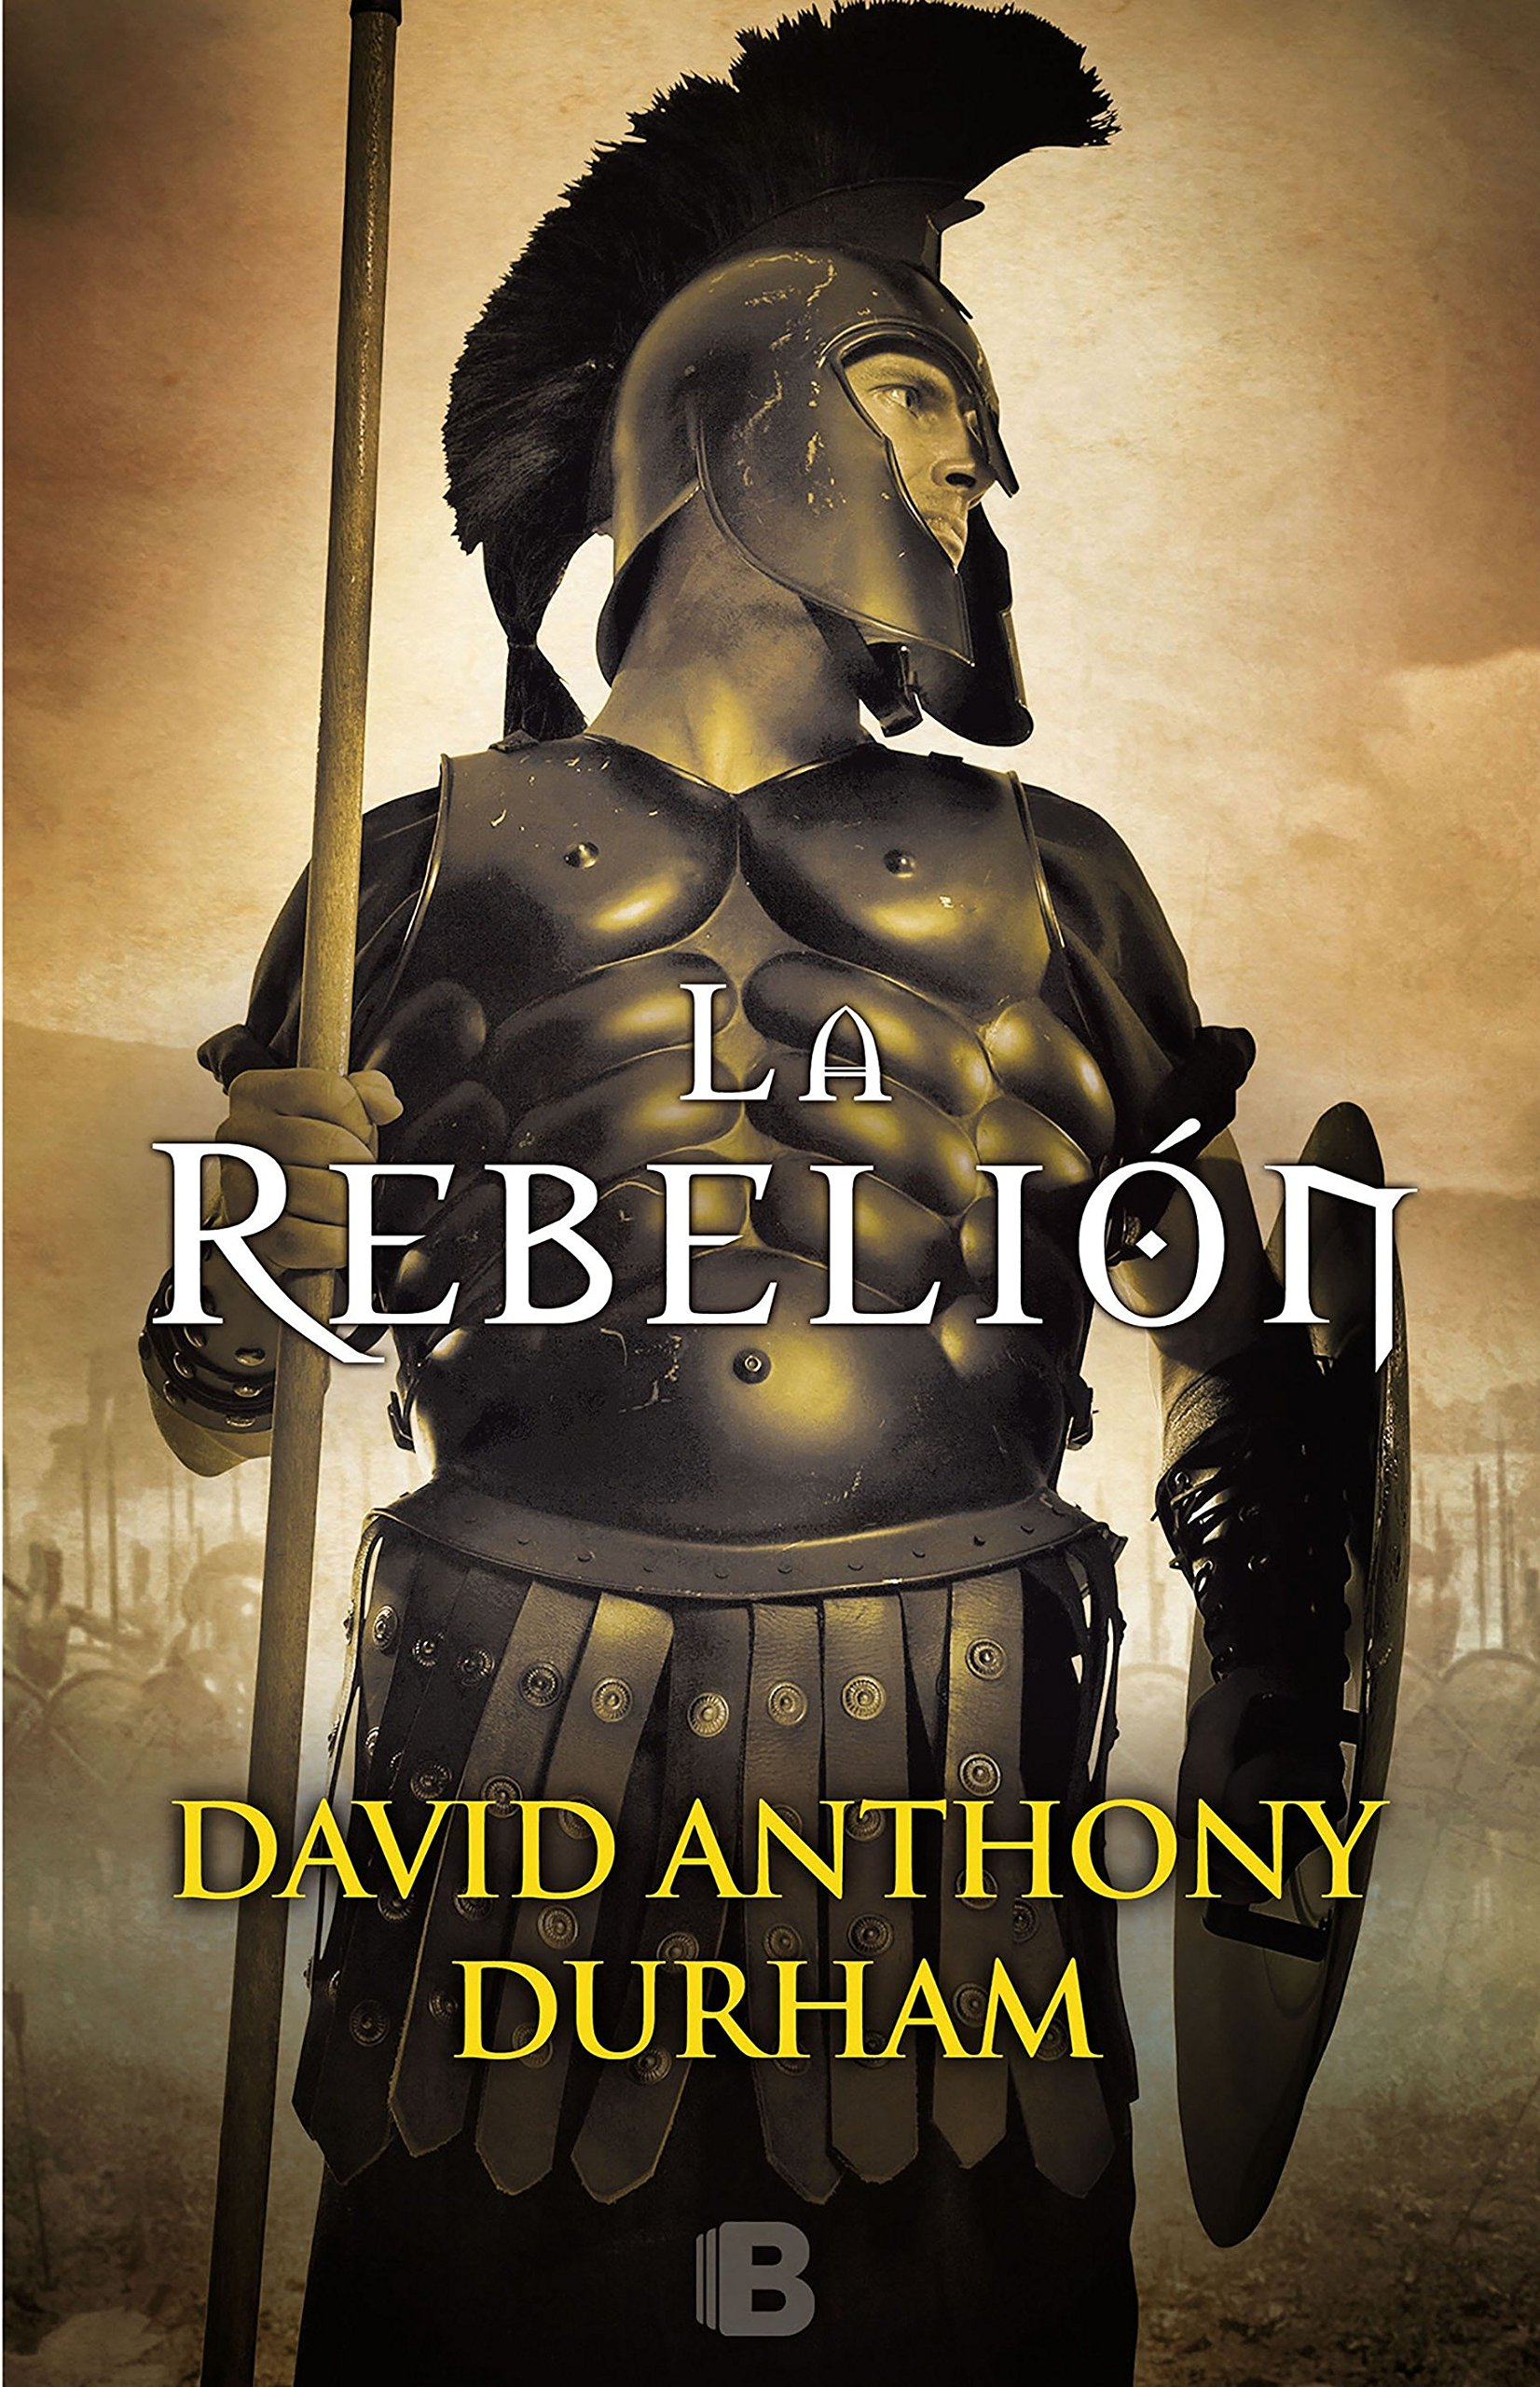 La Rebelión (HISTÓRICA) Tapa dura – 29 nov 2017 David Anthony Durham B (Ediciones B) 8466662502 Gladiators; Fiction.